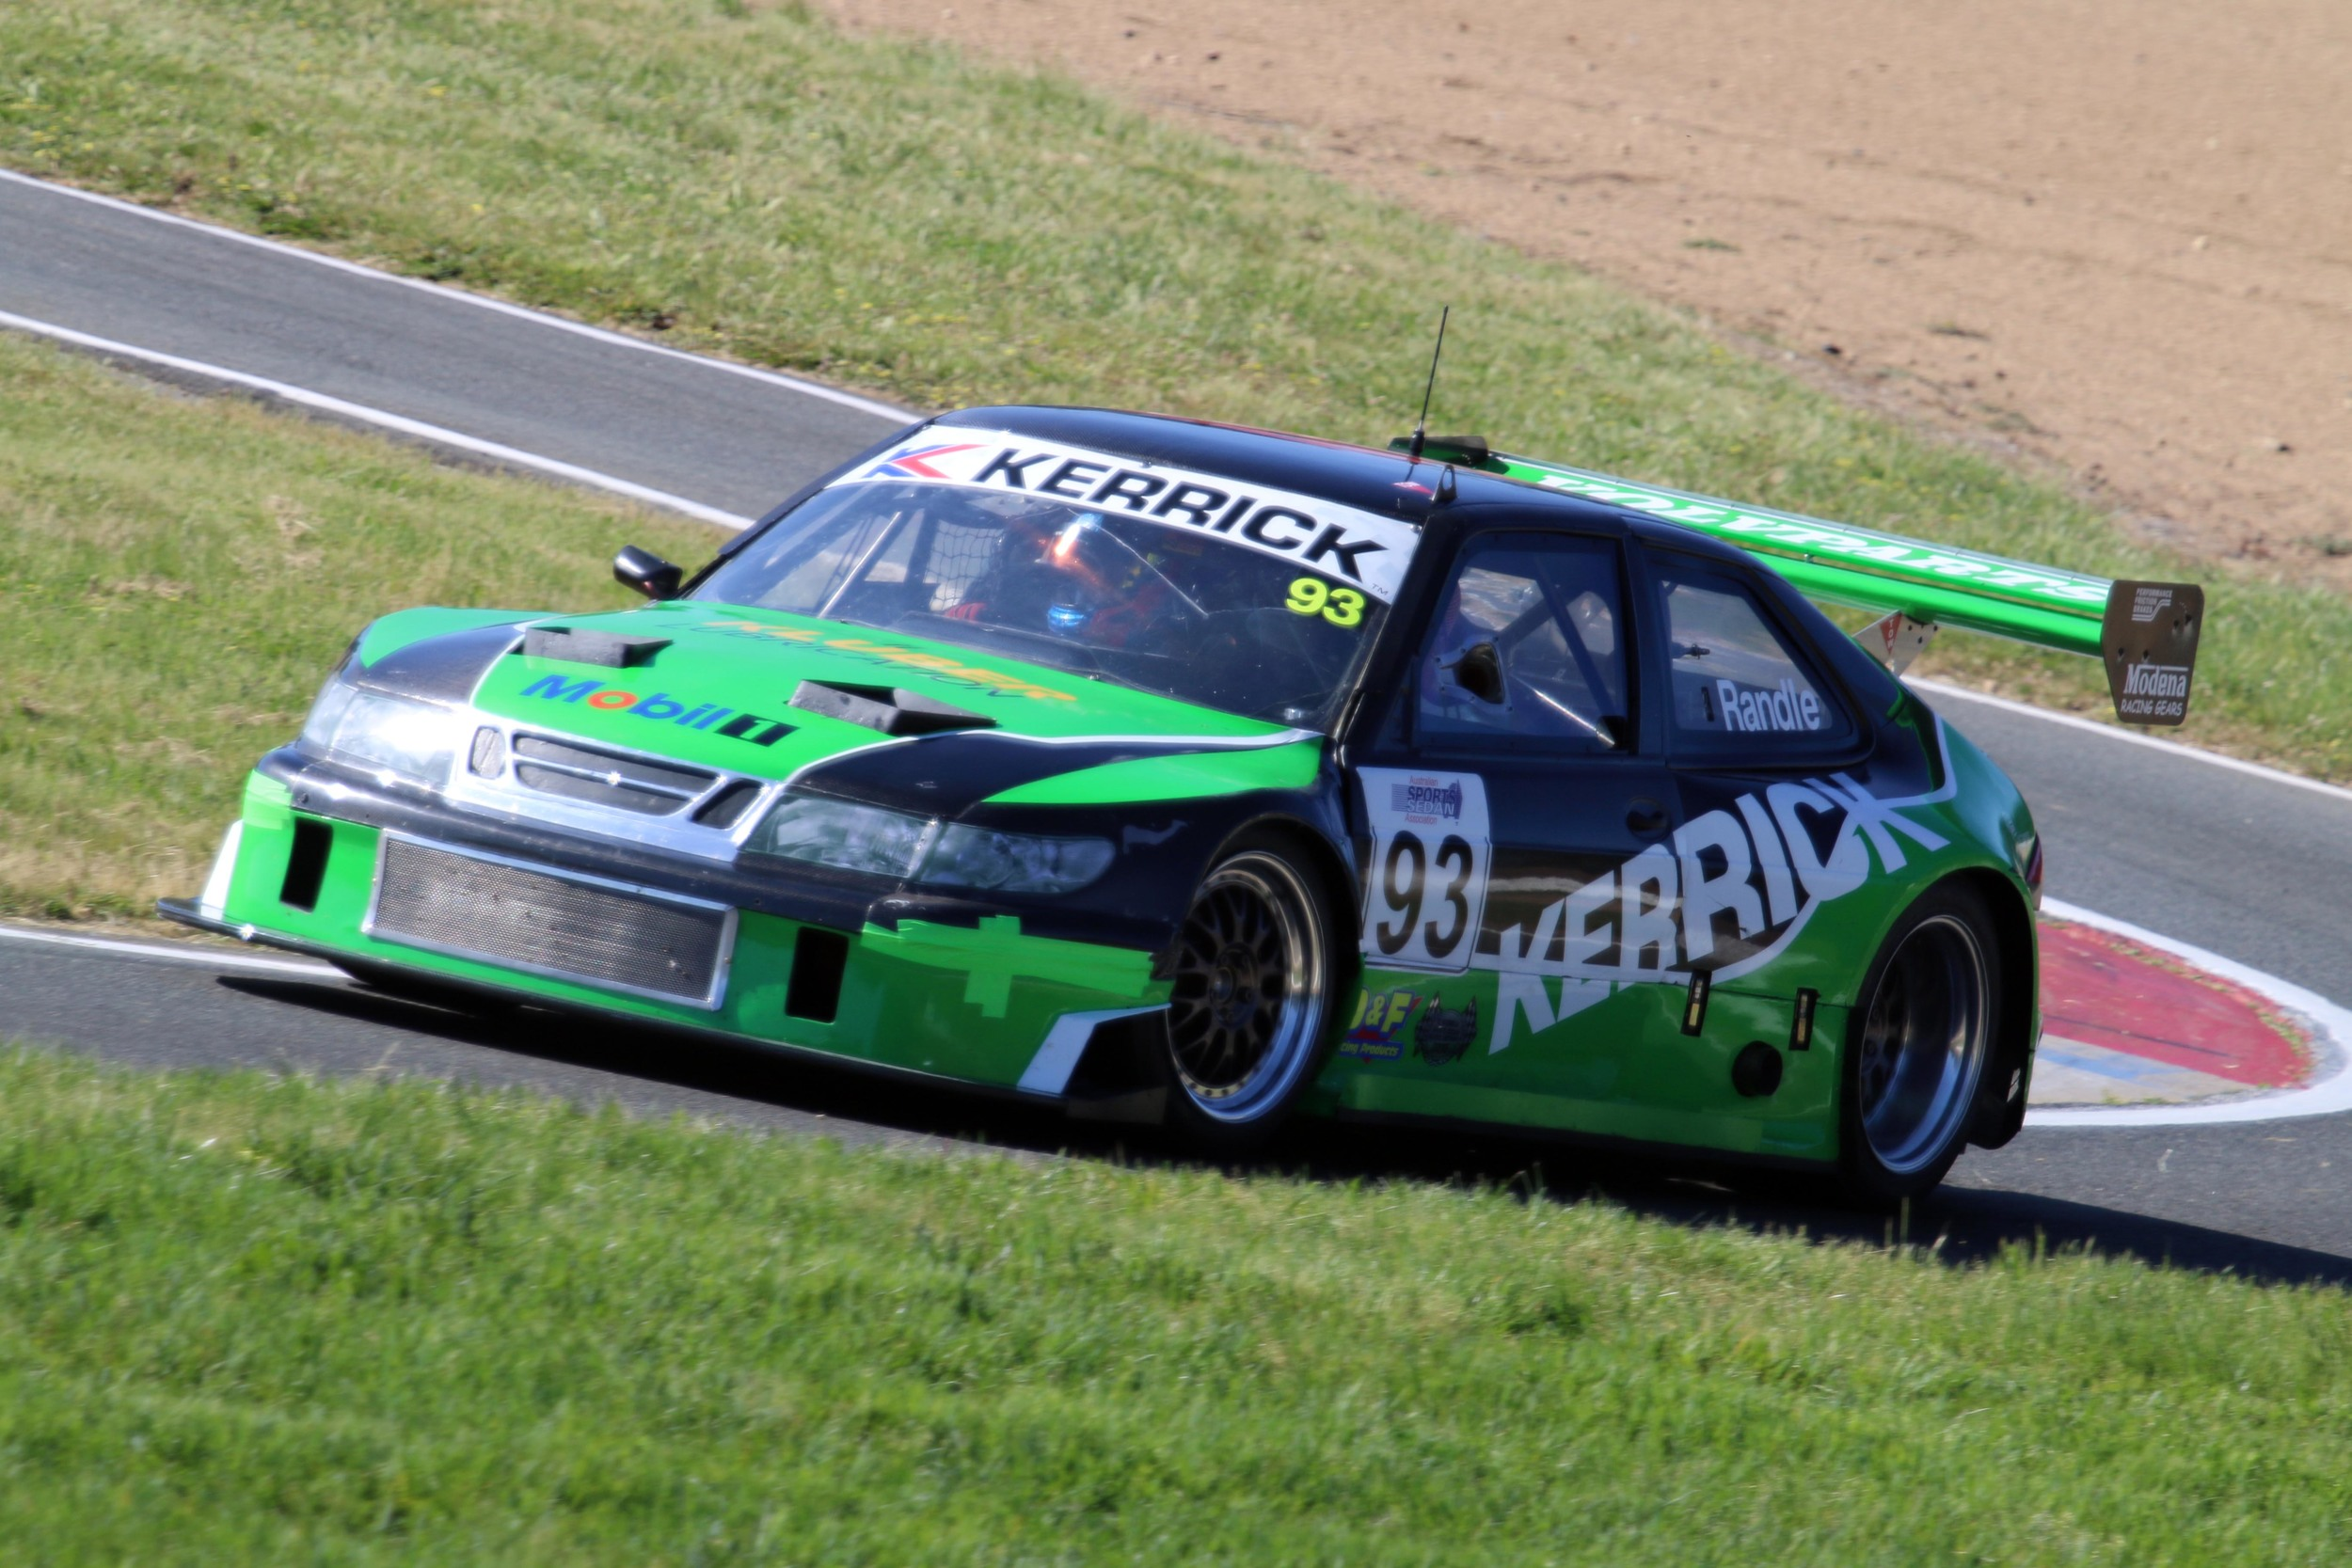 In 2016, the Series will enjoy backing from Kerrick for the 12th year running (credit-KSSS/Richard Craill)